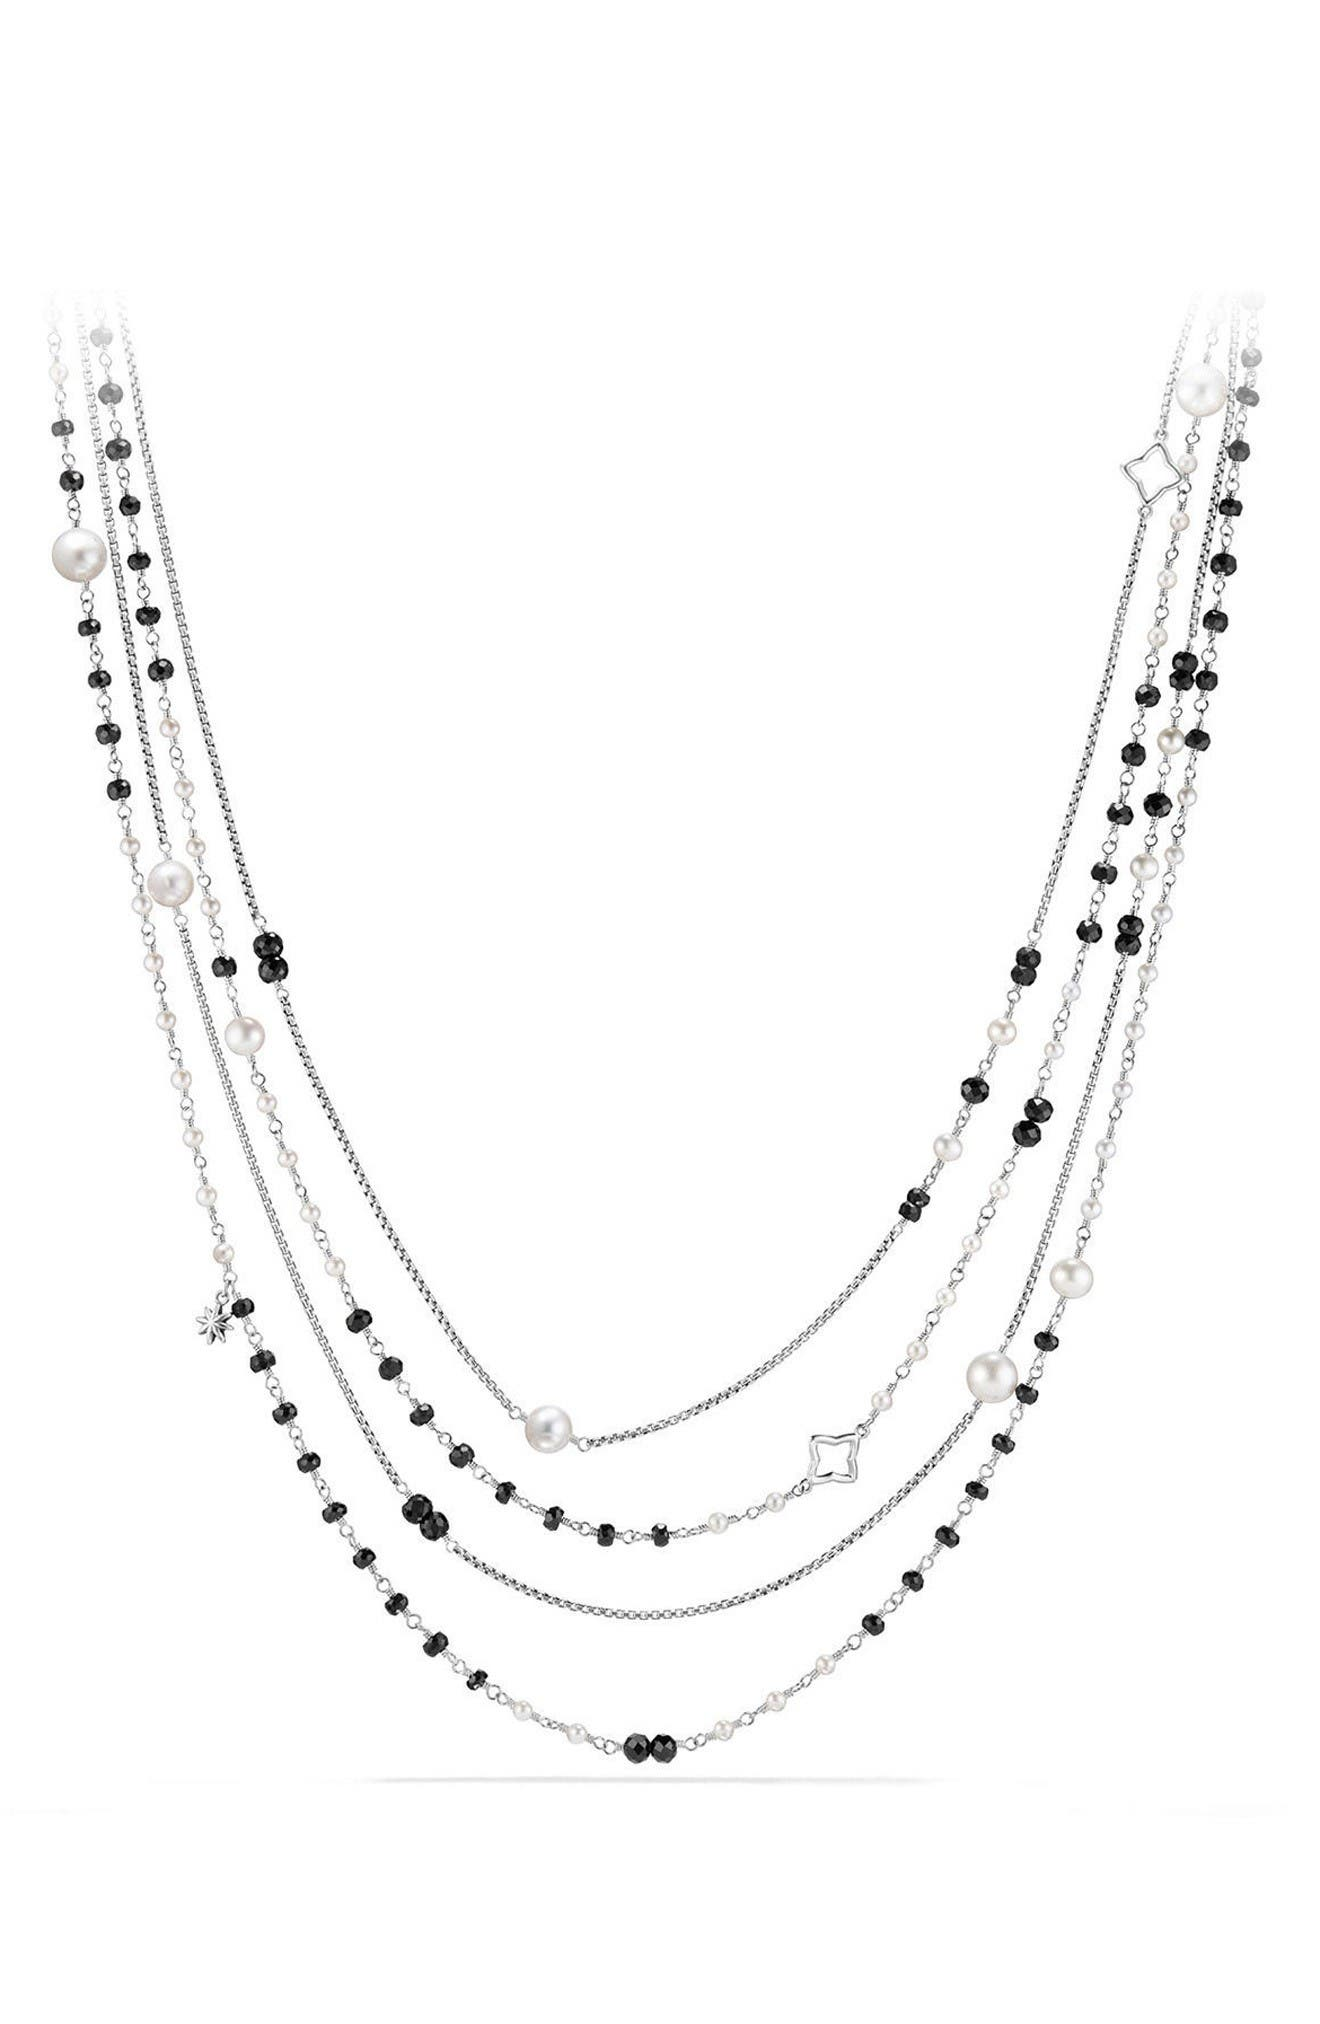 Solari Two Row Pearl Chain Necklace,                         Main,                         color, Pearl/ Black Spinel